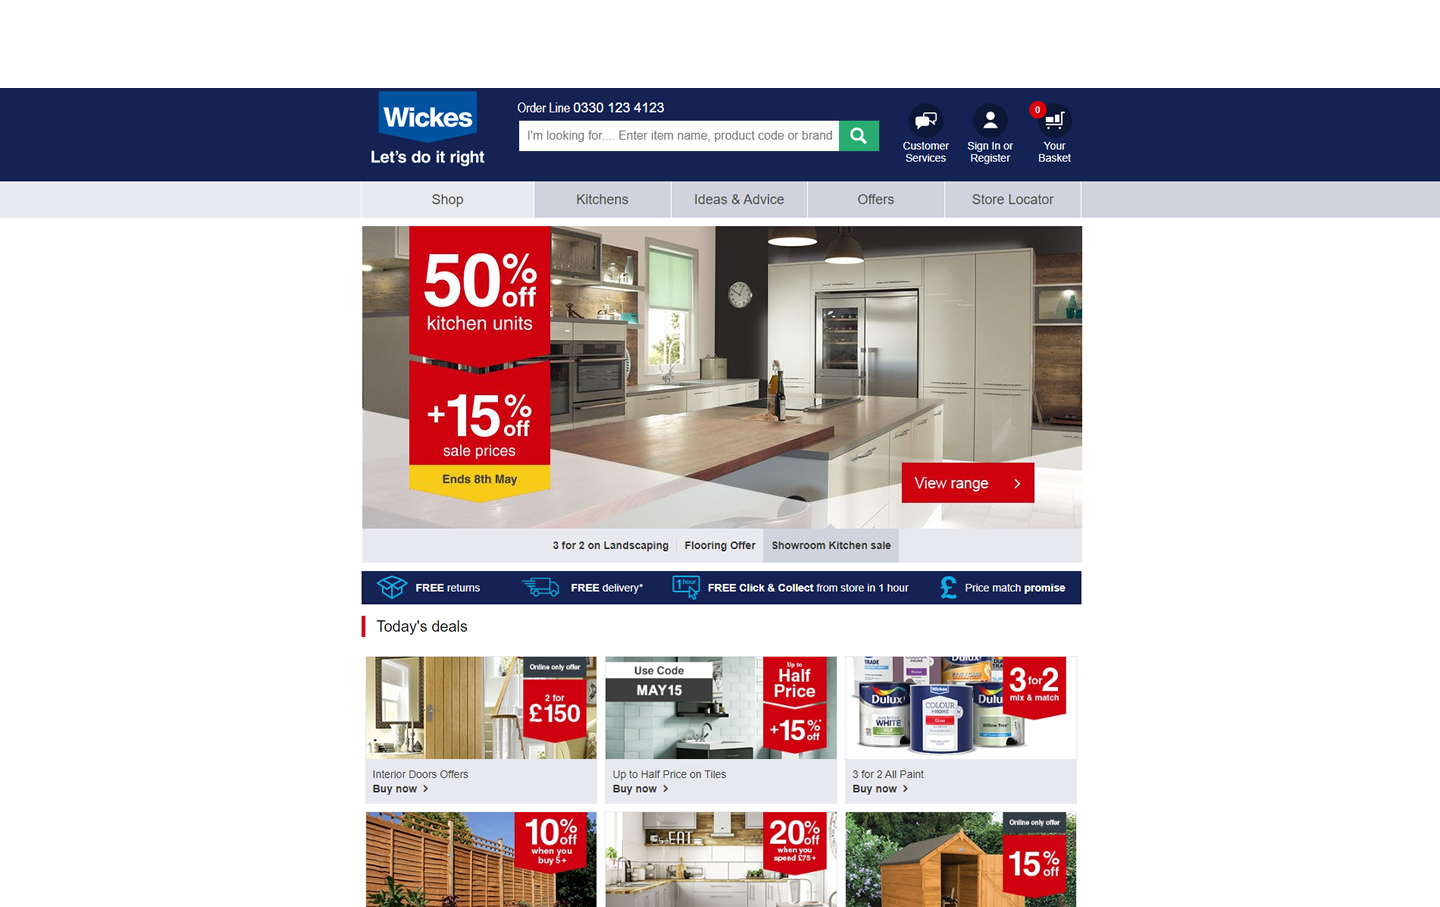 Wickes Homepage 2015